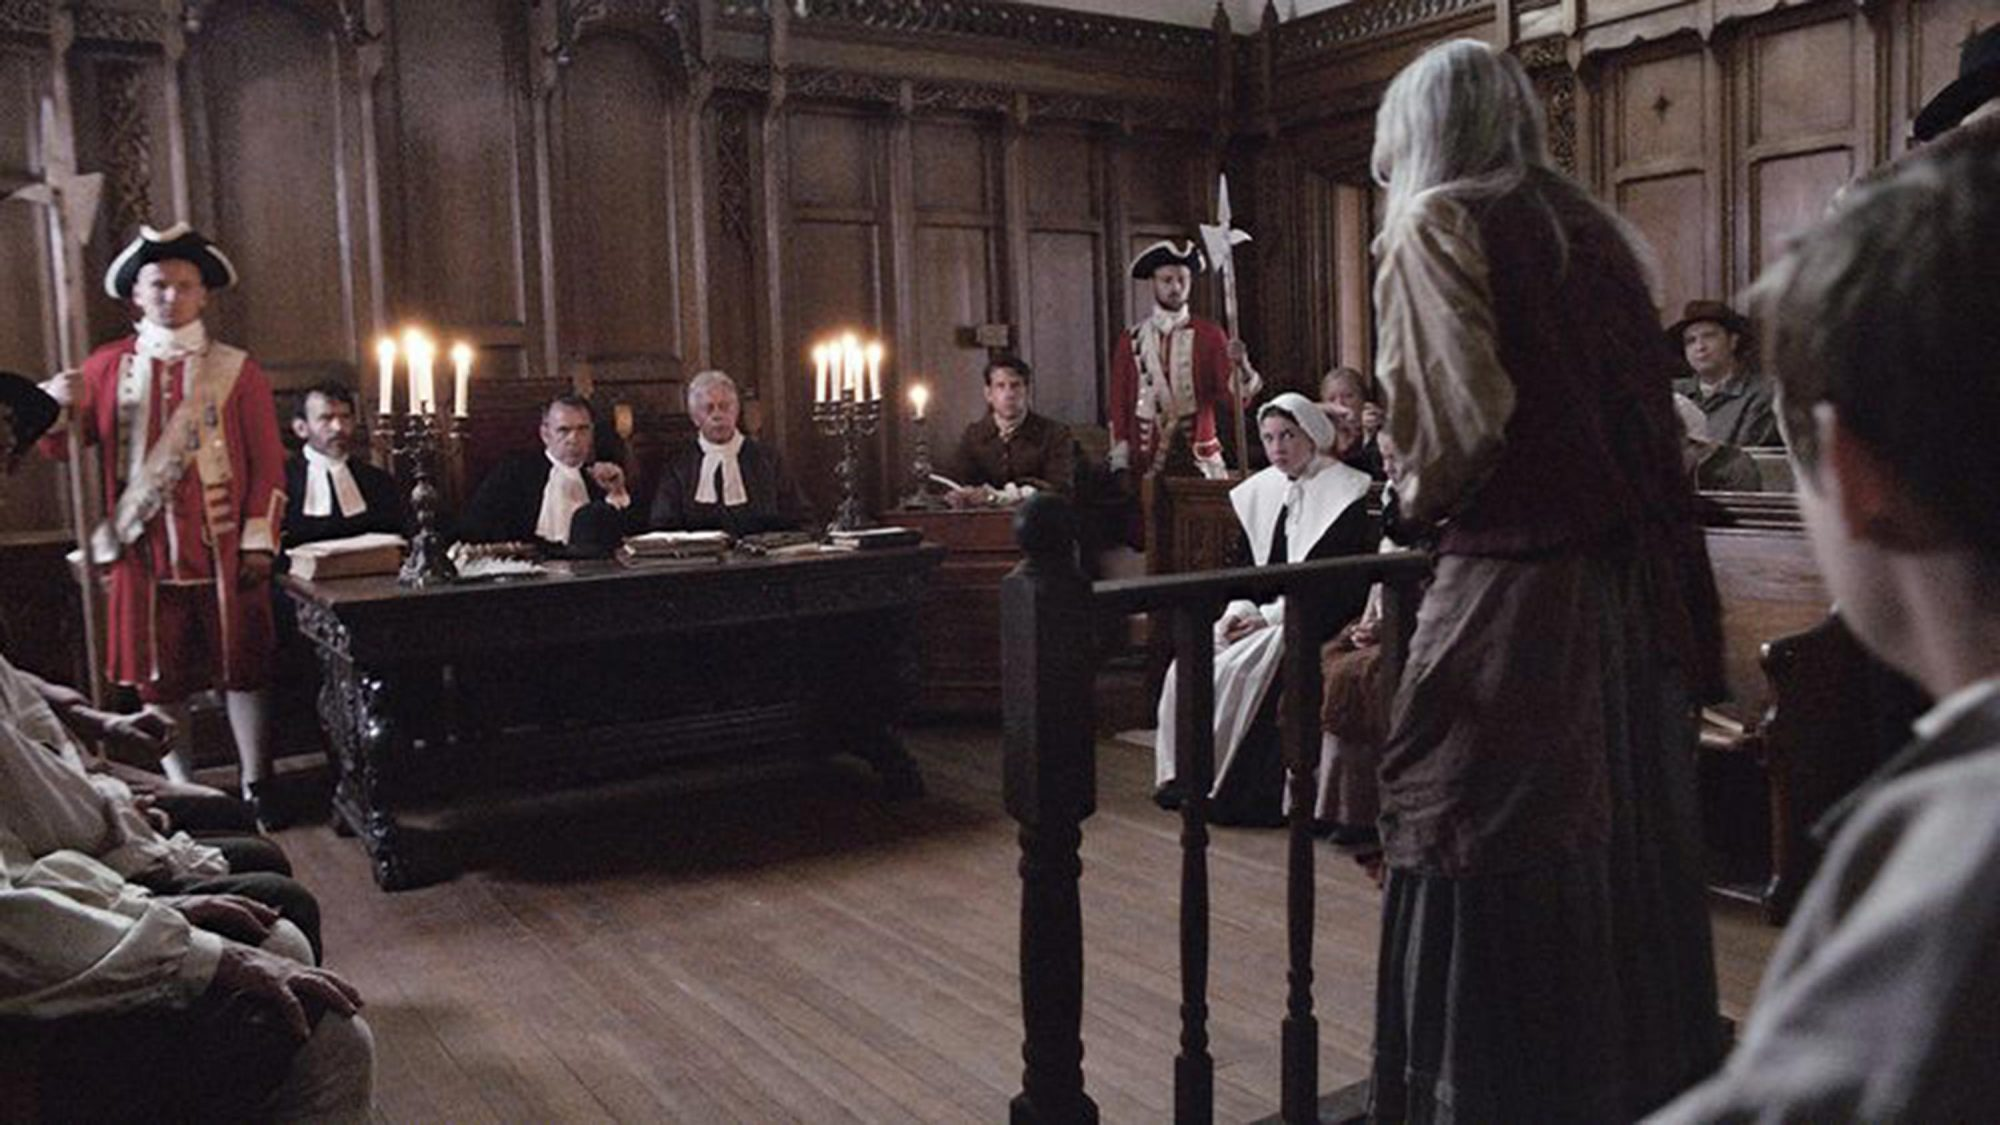 Wiches_of_Salem_courtroom.5524a6379867